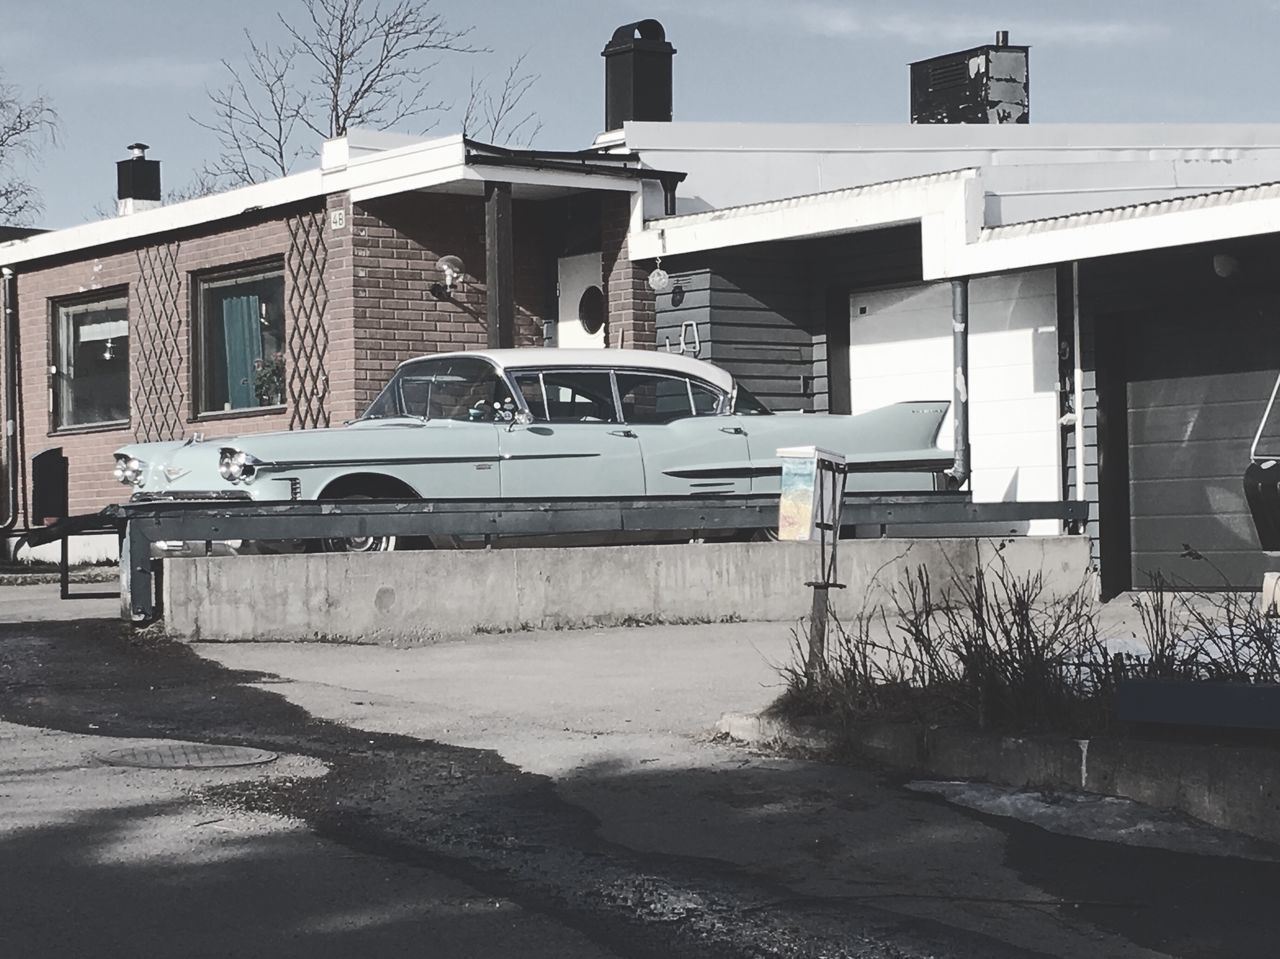 Some cars are bigger than the house Kiruna Kiruna The Drift Block Hometown Sweden Making A New Movie Liselotte Wajstedt Car Photography American Cars The Week Of Eyeem The Week On EyeEm ©Liselottewajstedt